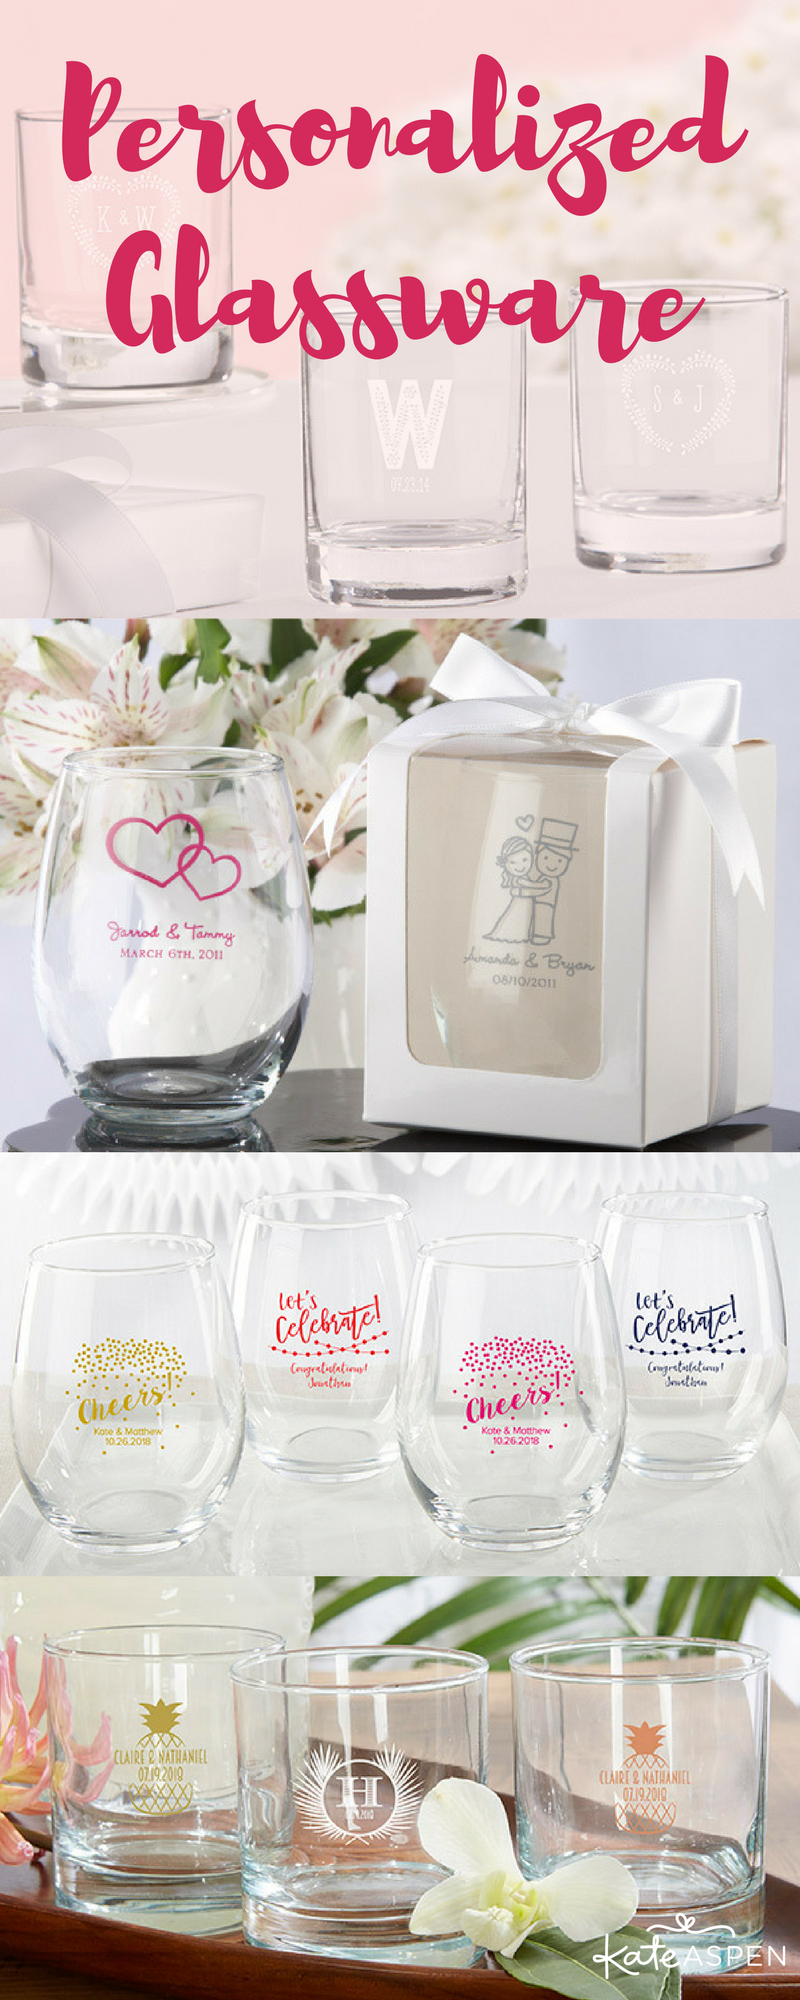 Personalized glassware is the perfect favor for weddings and other ...